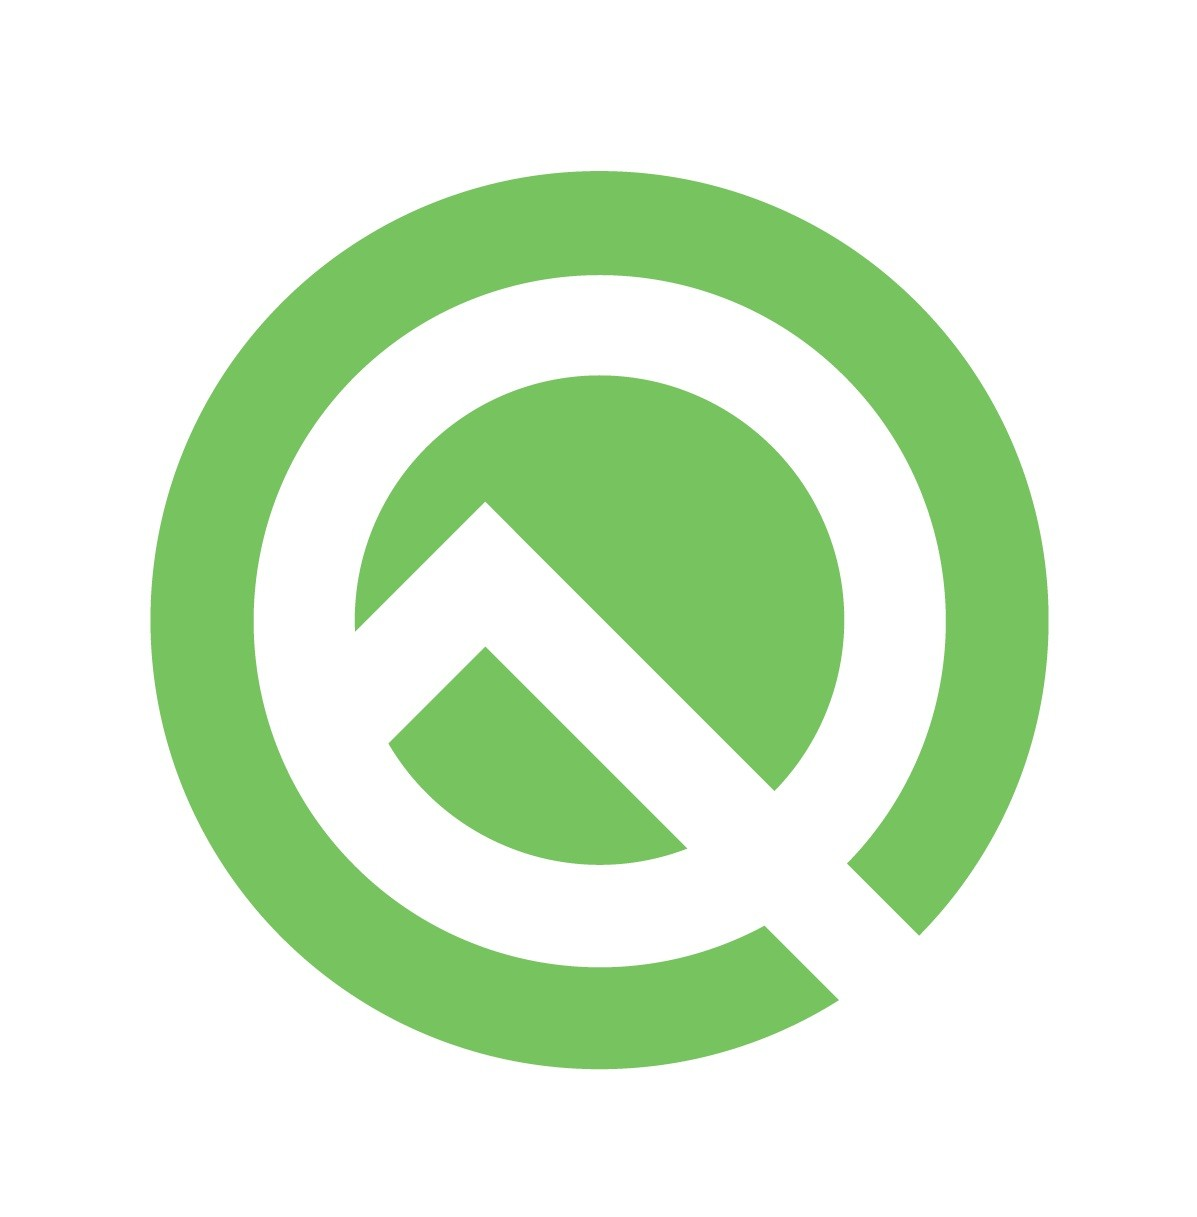 Android Q Enters Beta with New Privacy and Security Features